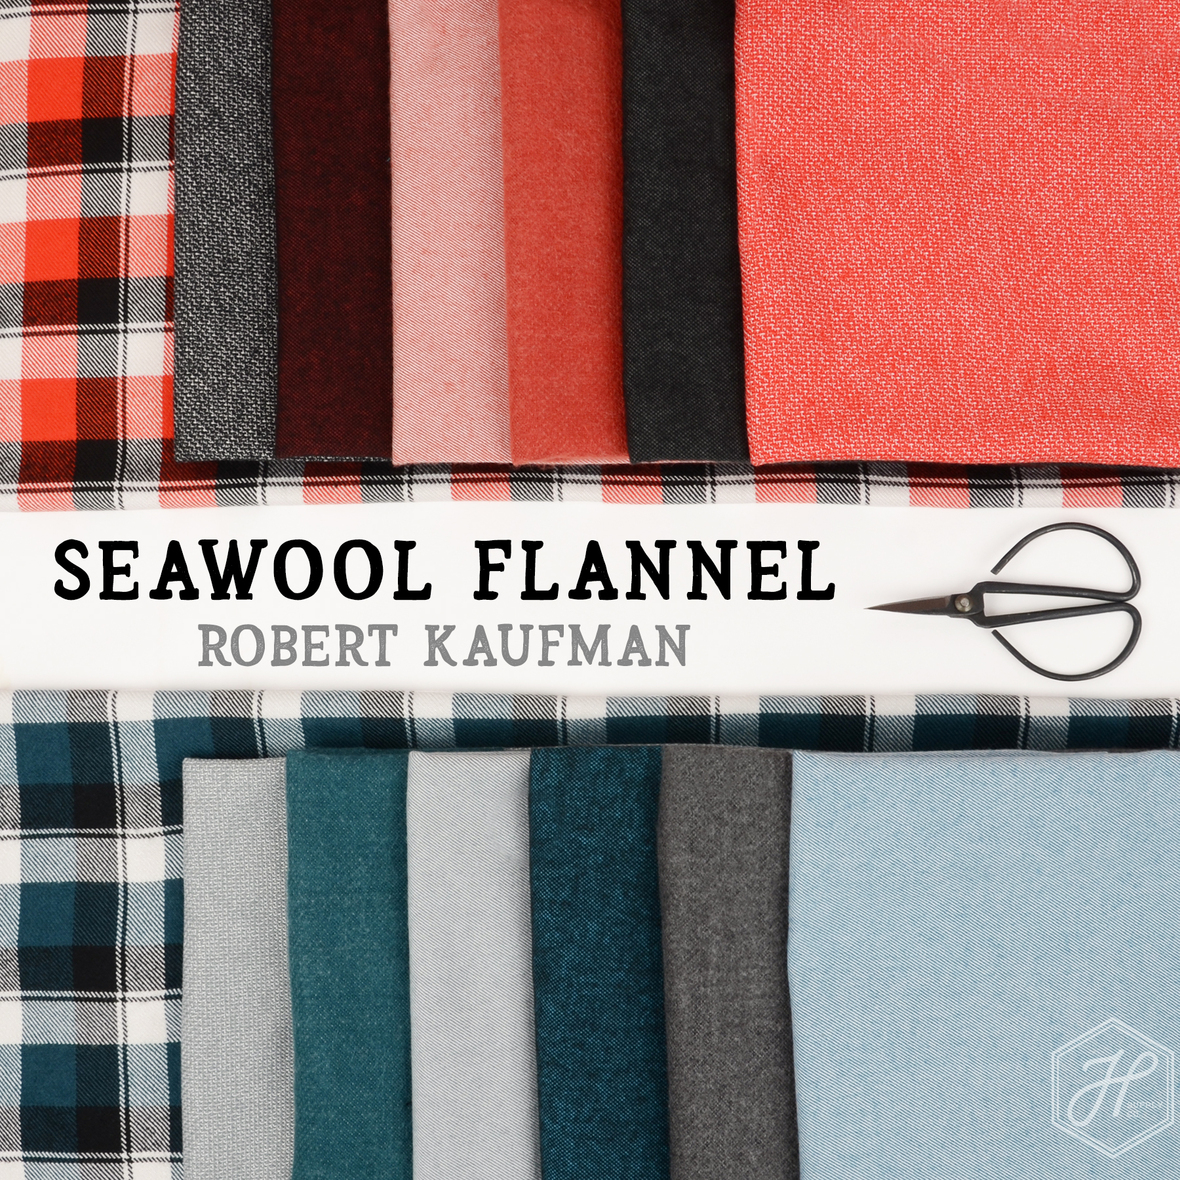 Seawool Flannel fabric from Robert Kaufman at Hawthorne Supply Co